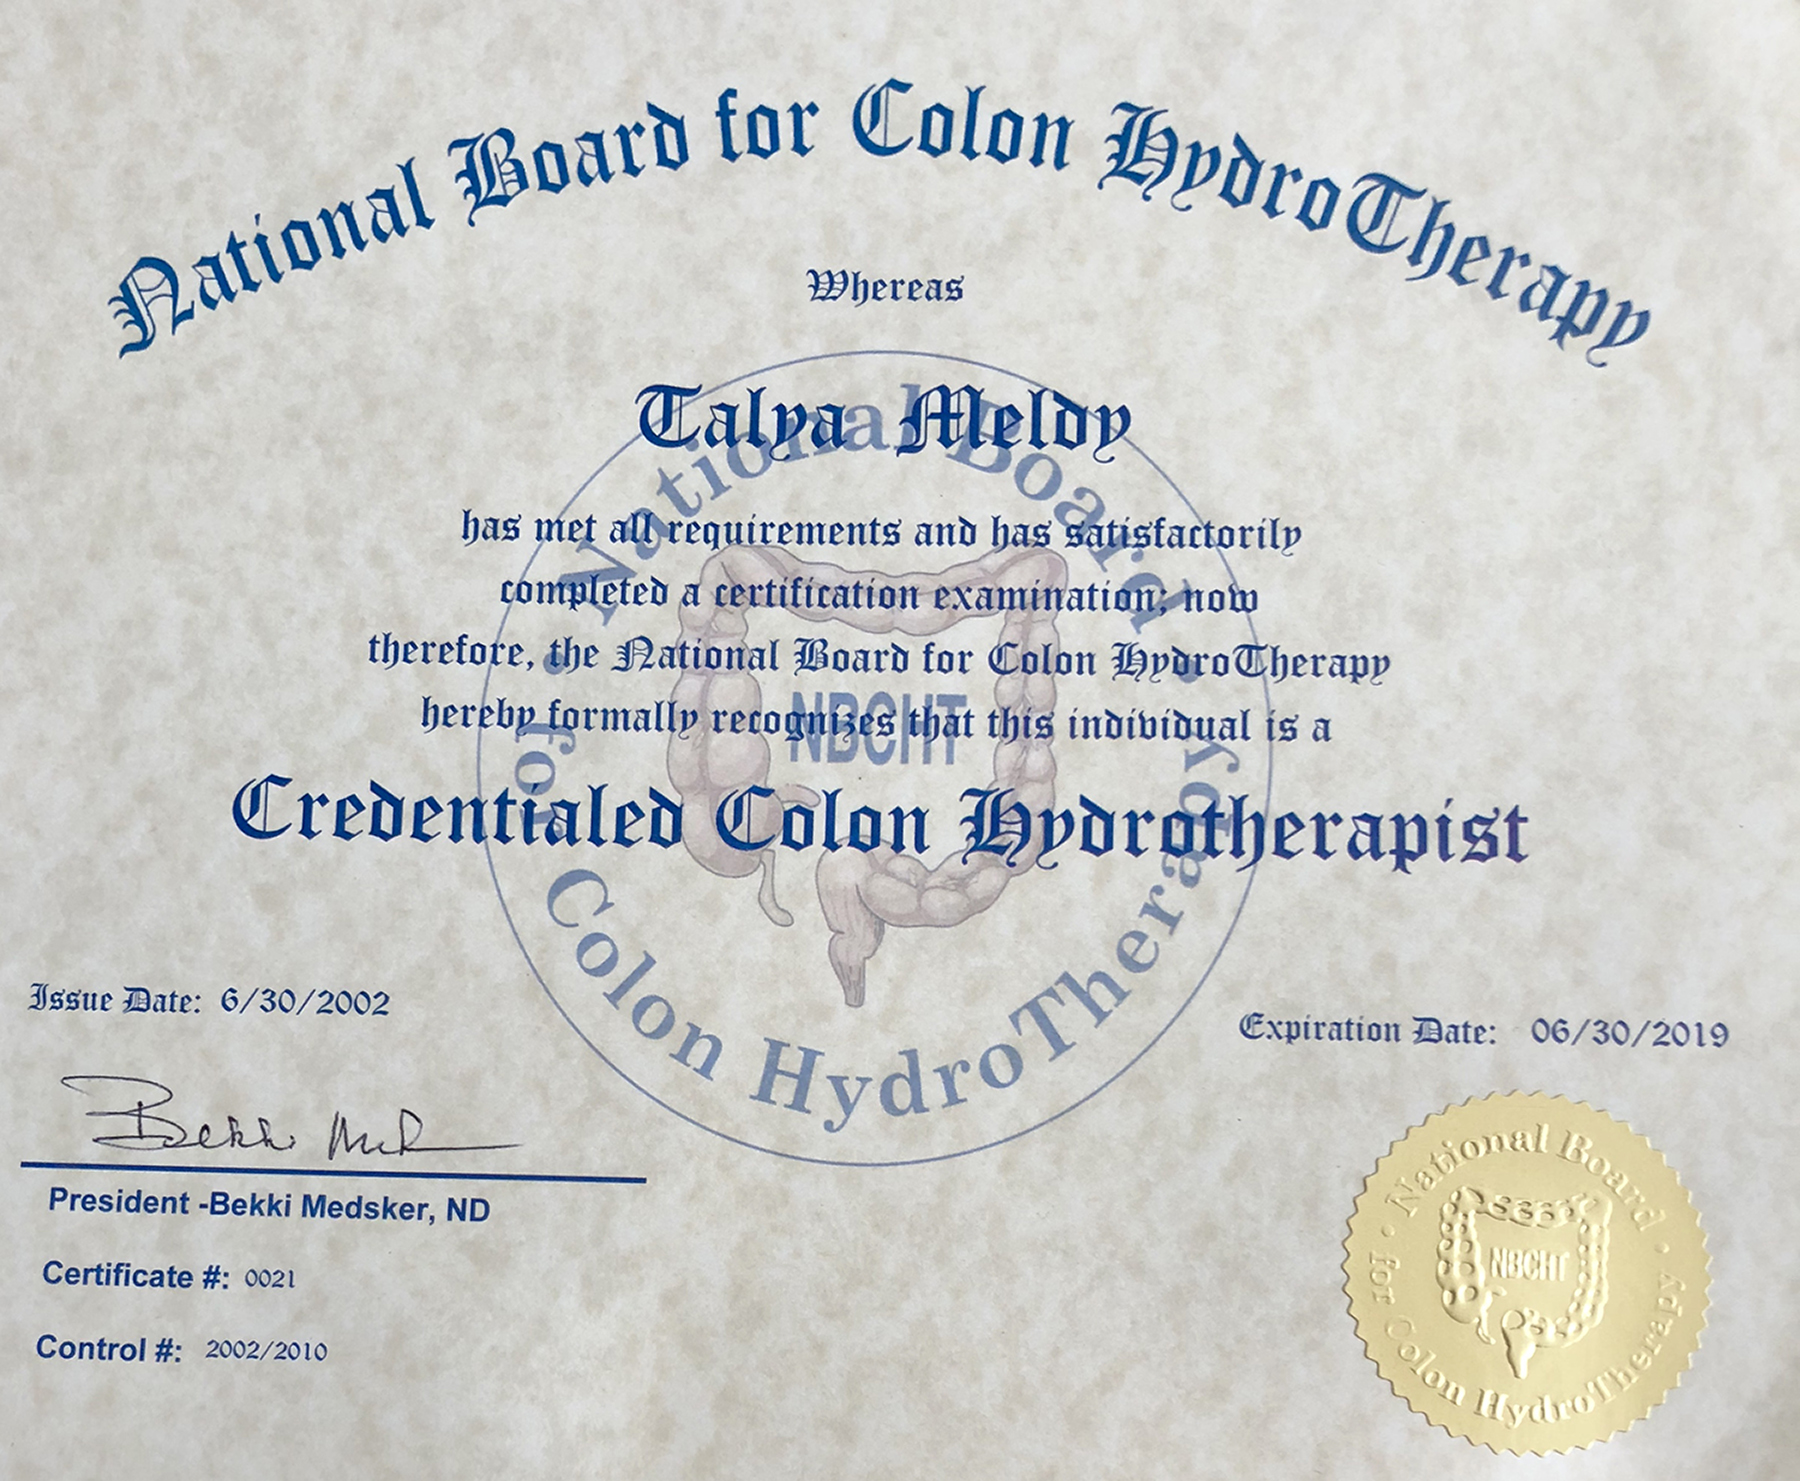 National Board Colon Hydrotherapist Certification